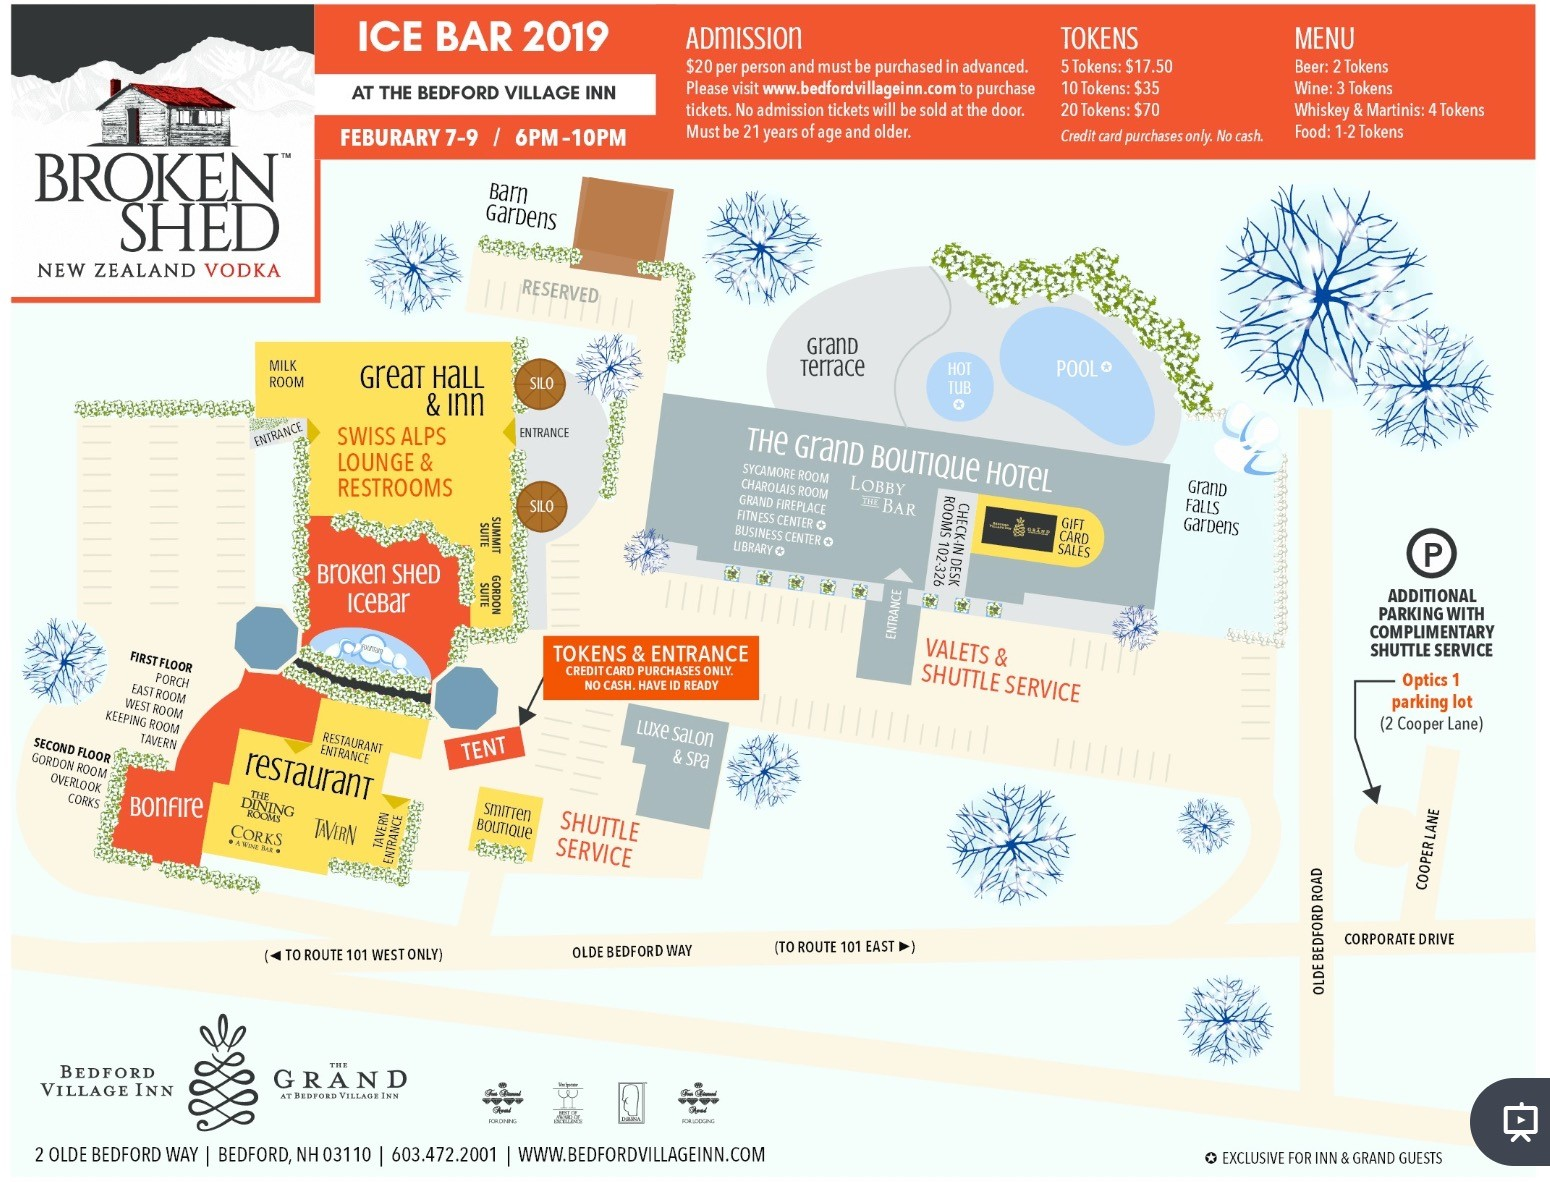 2019 Broken Shed Ice Bar Map